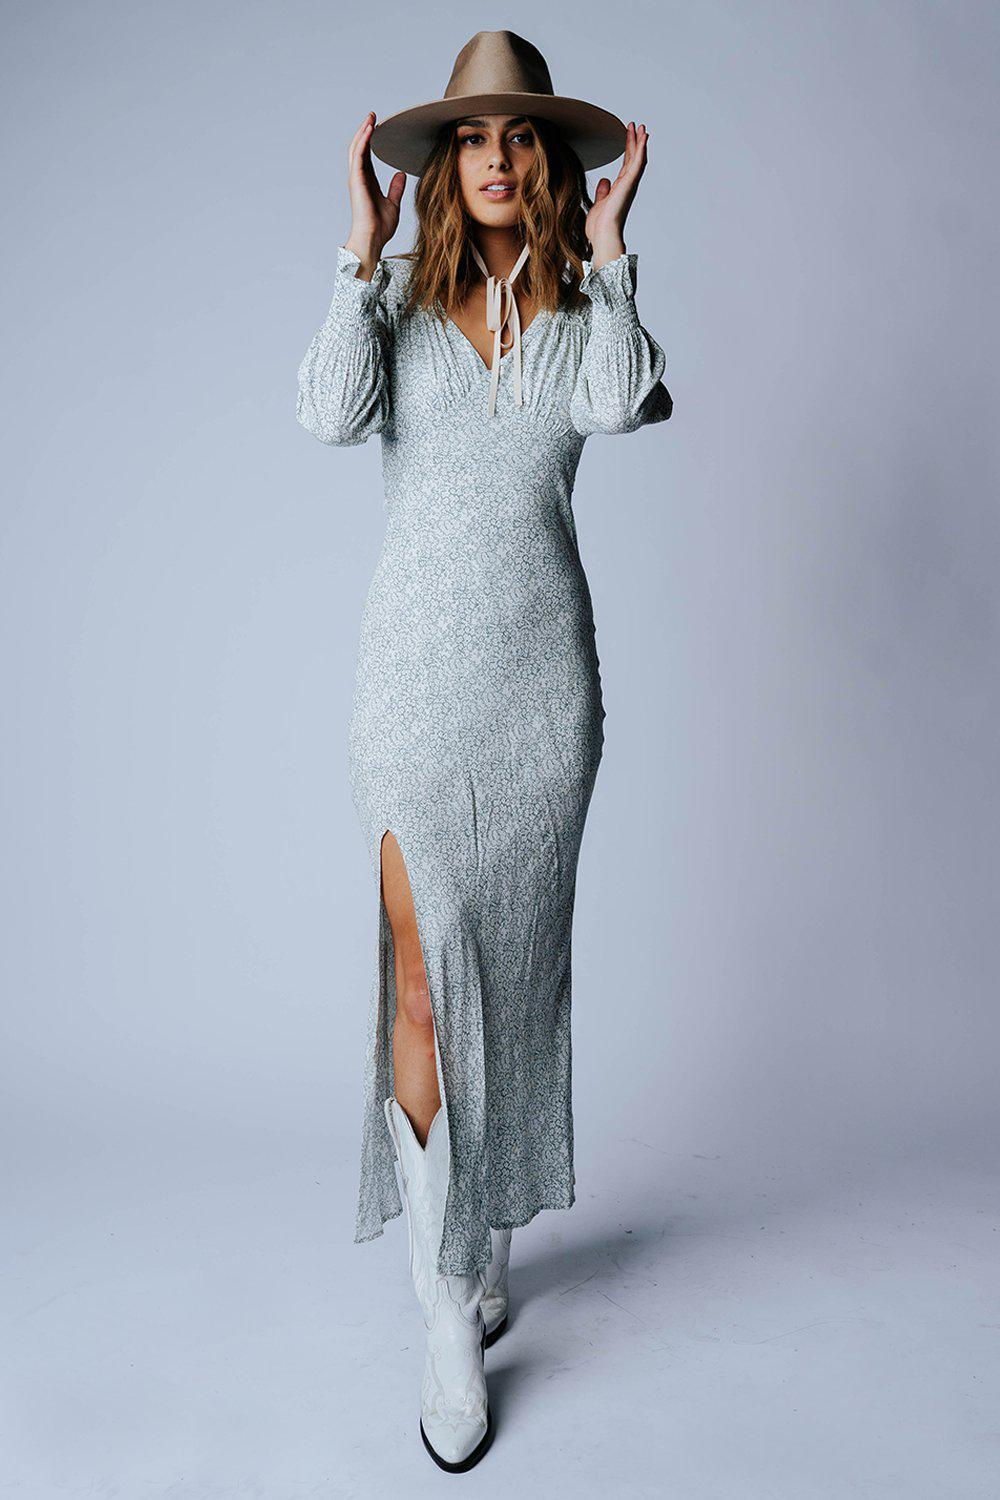 best_seller, Where is the Love? Floral Maxi Dress in Sage, Dress, women's clothing, dresses, skirts, coats, jackets, shoes, boots, tops, tee shirts, jeans, free people, levi's, rollas, jumpsuits, bottoms, tops, sweaters, pullovers, pants, shorts, sweats,.